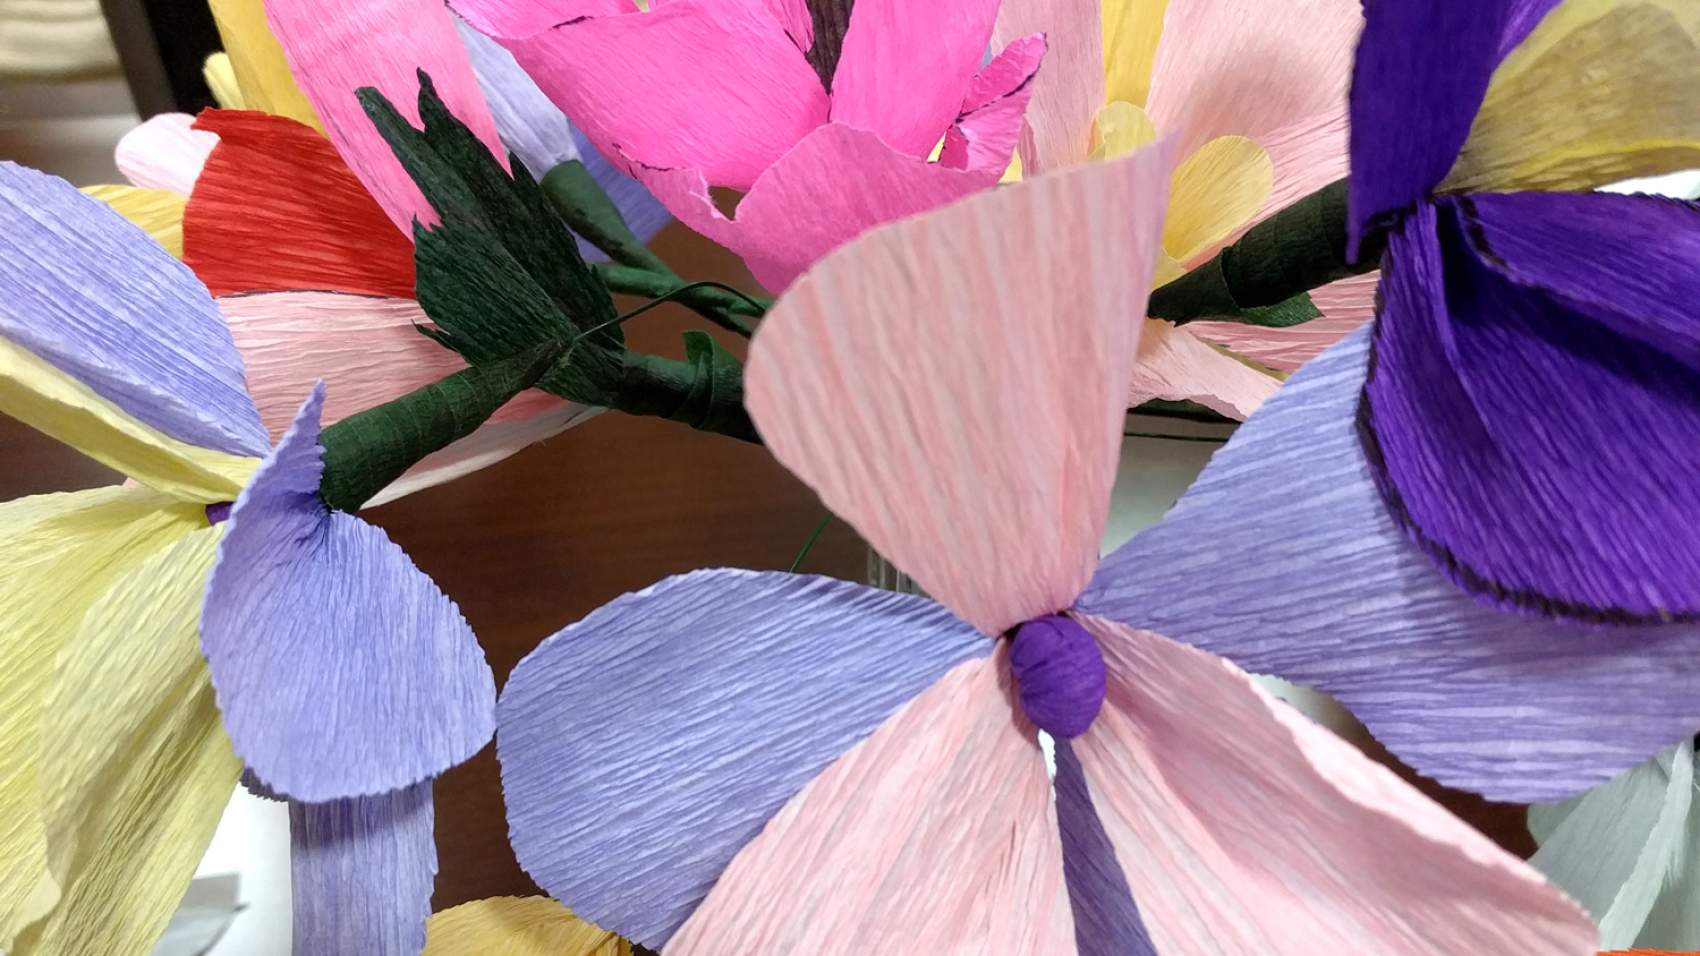 Residents at Valley Glen help create colorful paper flowers made with fancy crepe paper and other supplies.